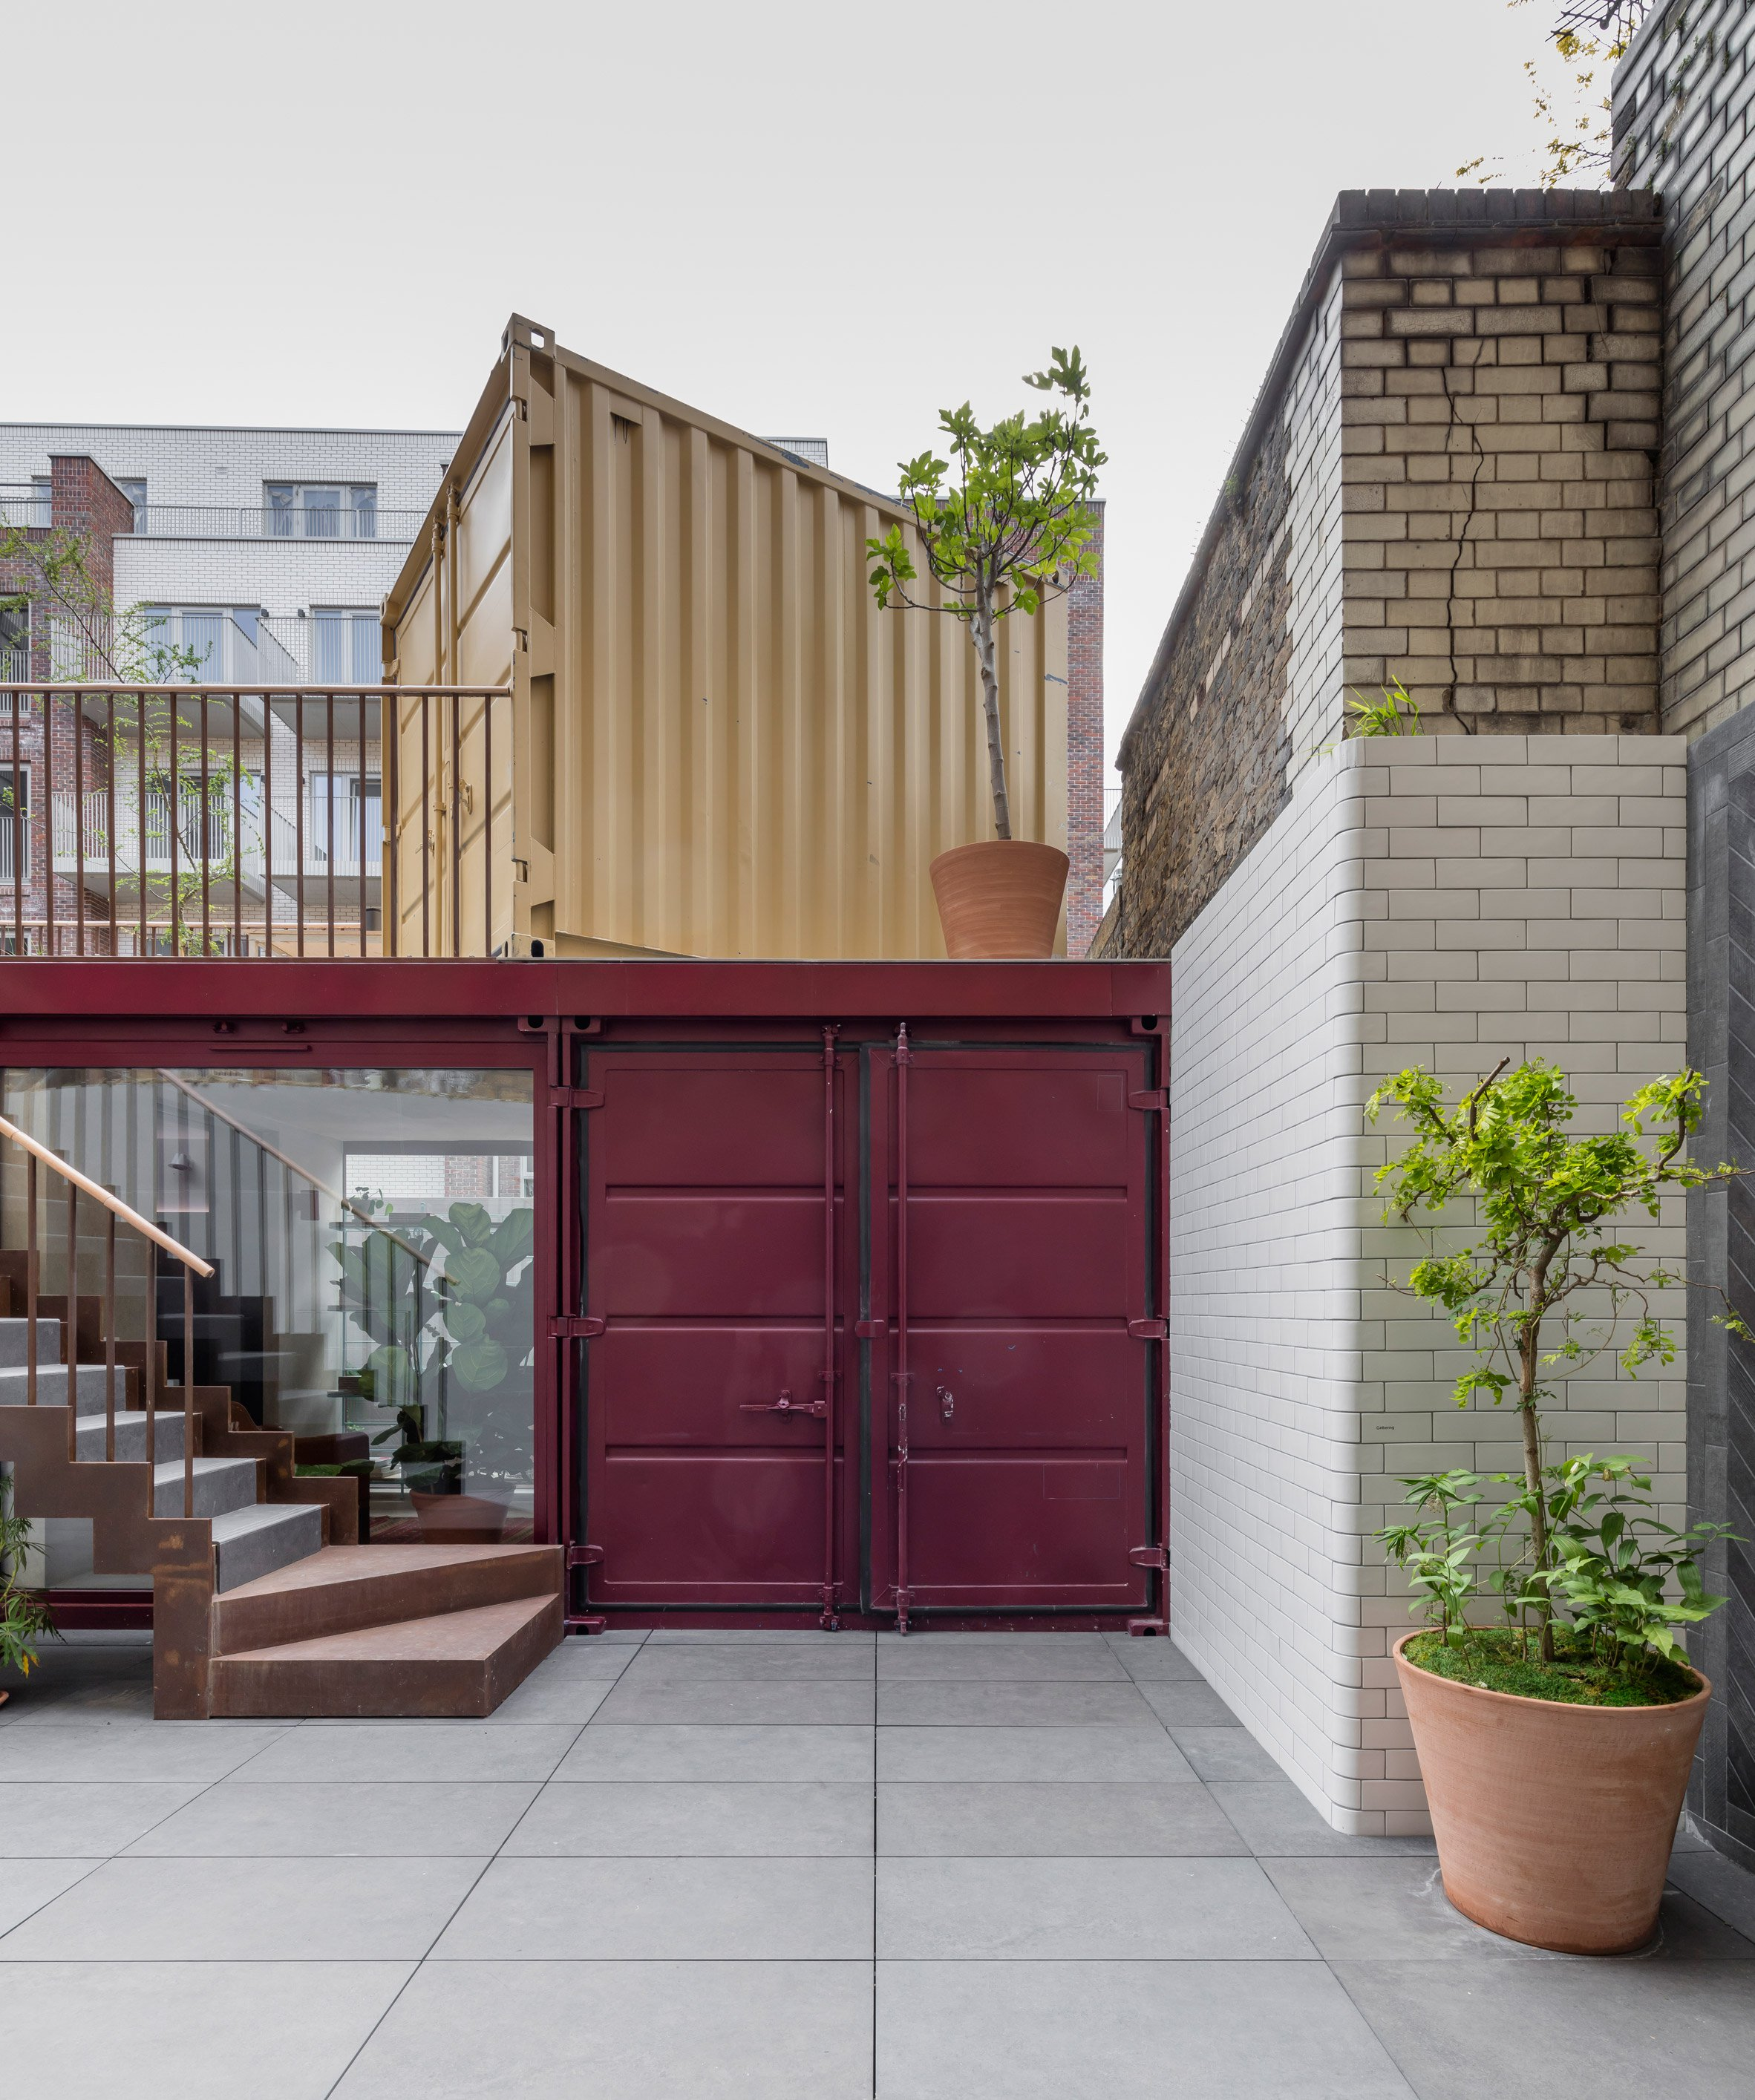 Container Haus London Simon Astridge Stacks Shipping Containers To Create Backyard